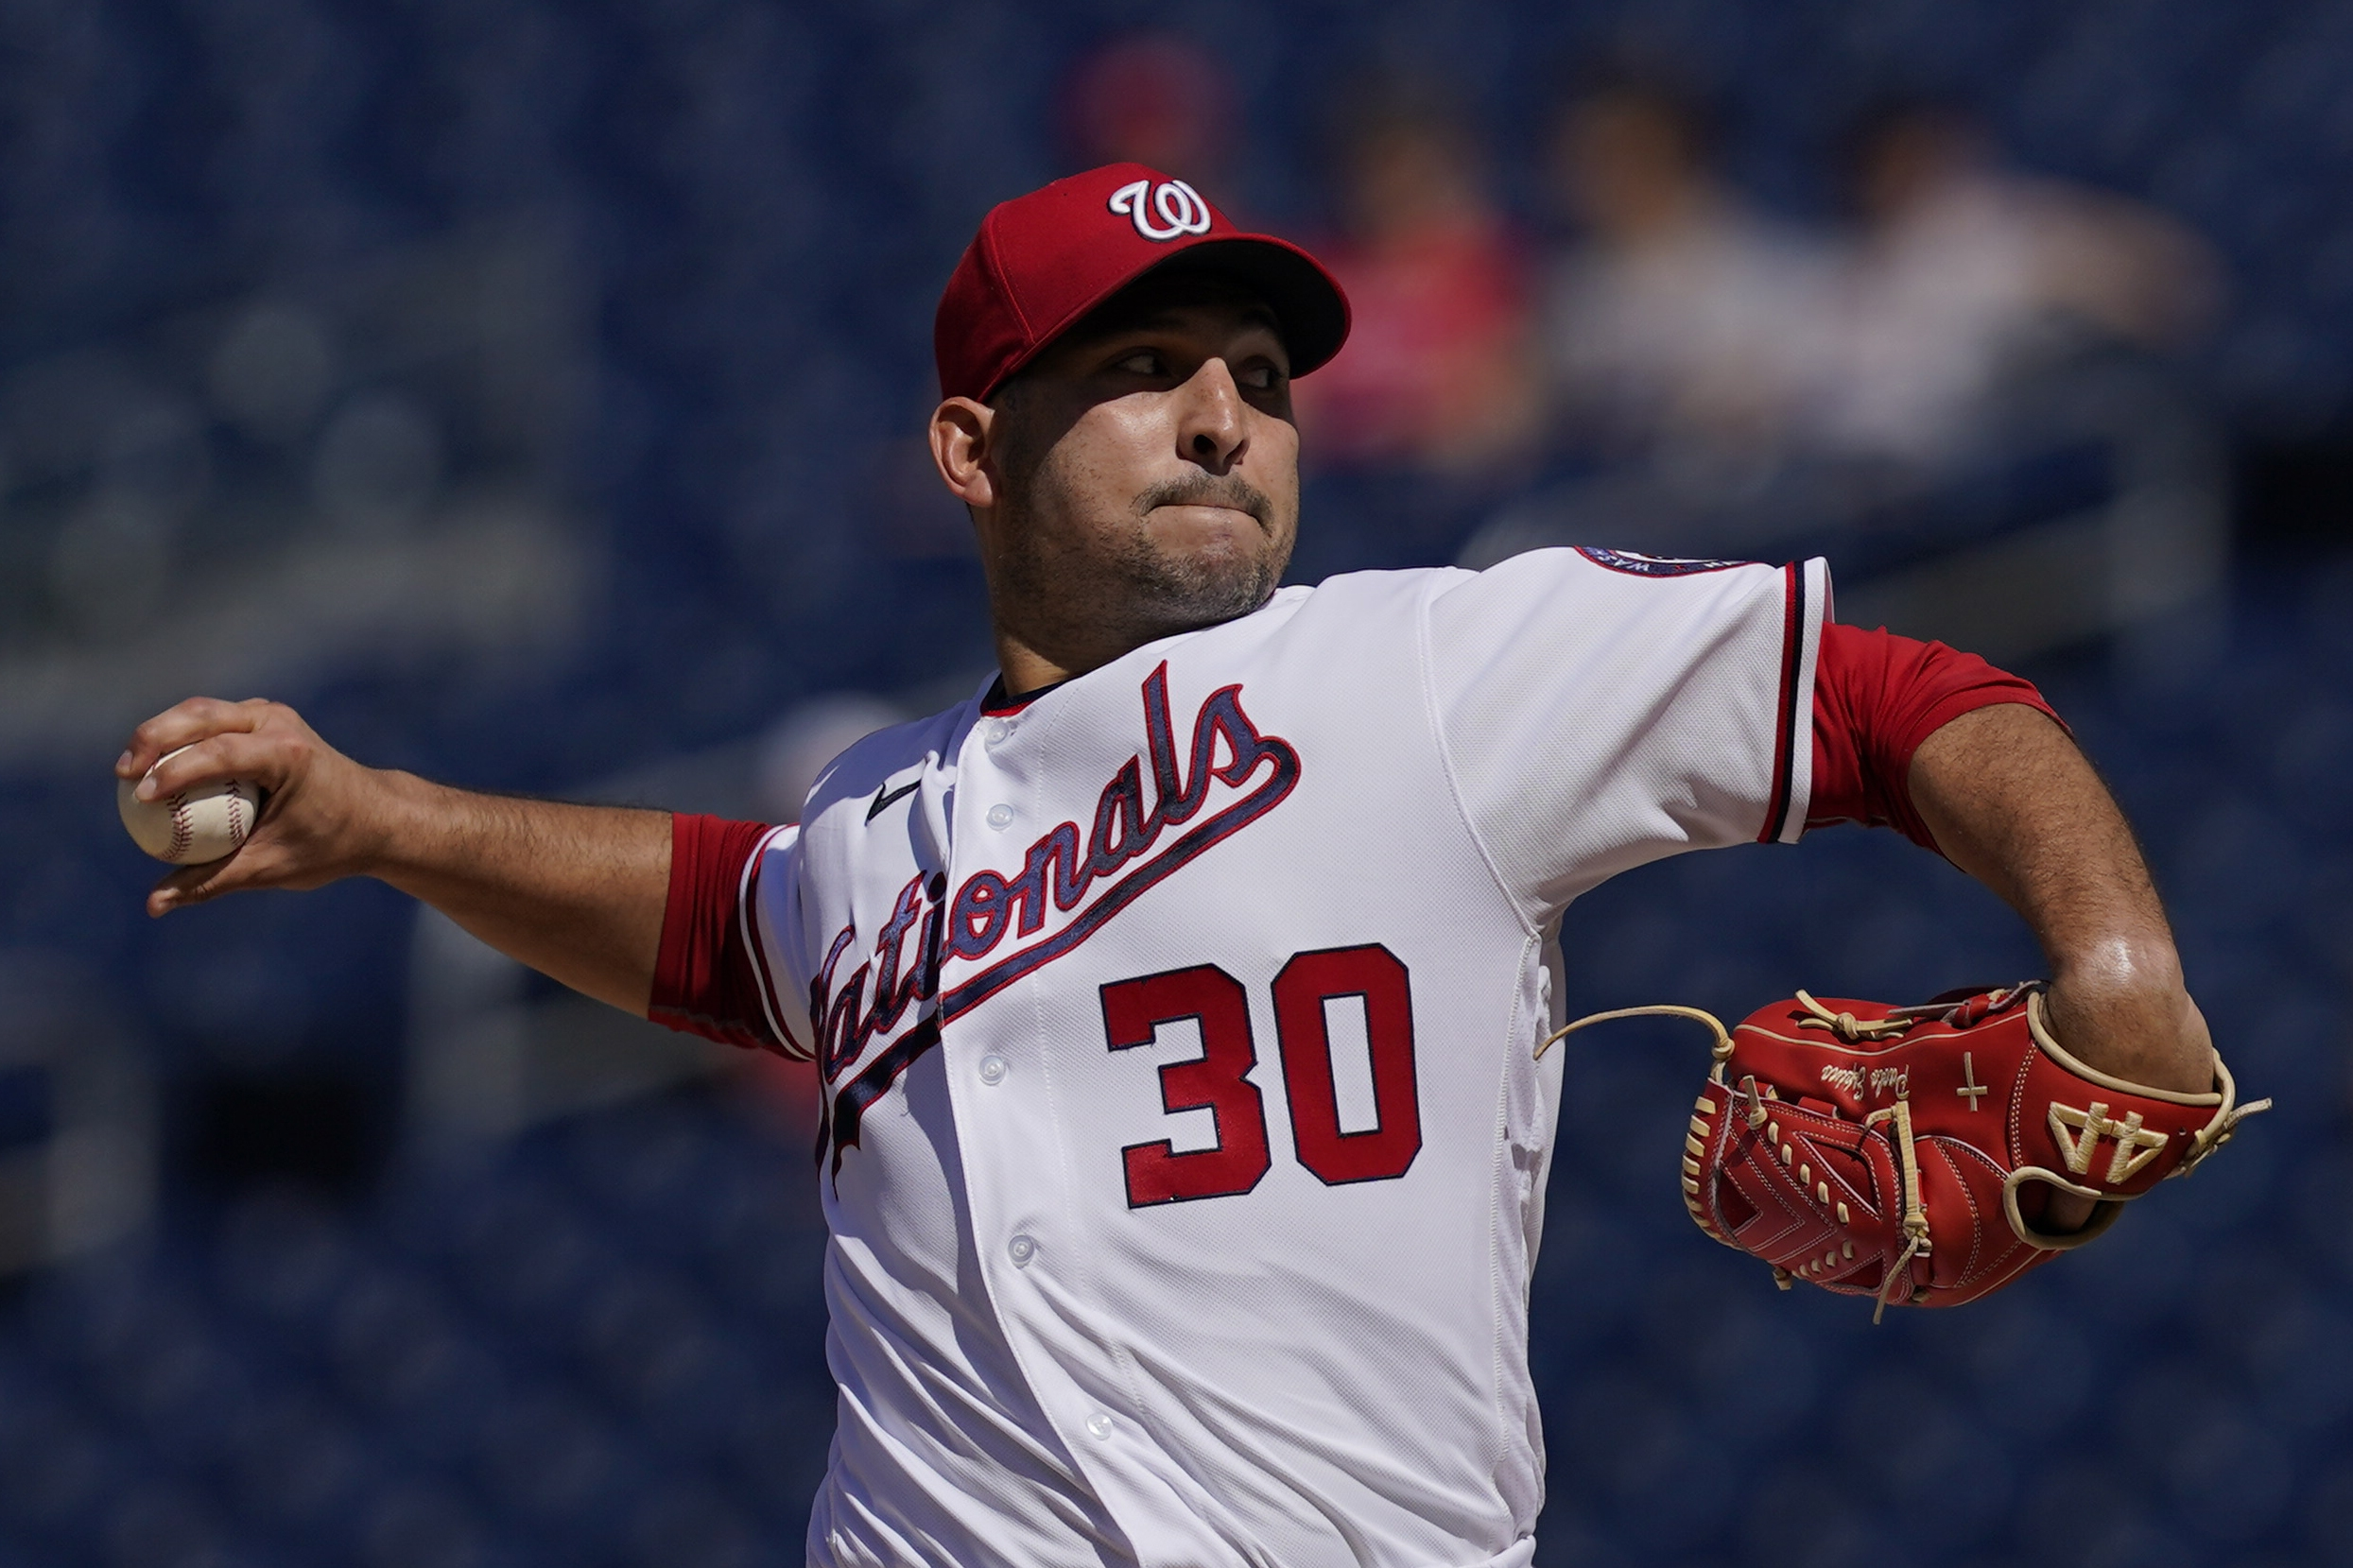 Journeyman Espino pitches Nationals to sweep of Pirates | WTOP